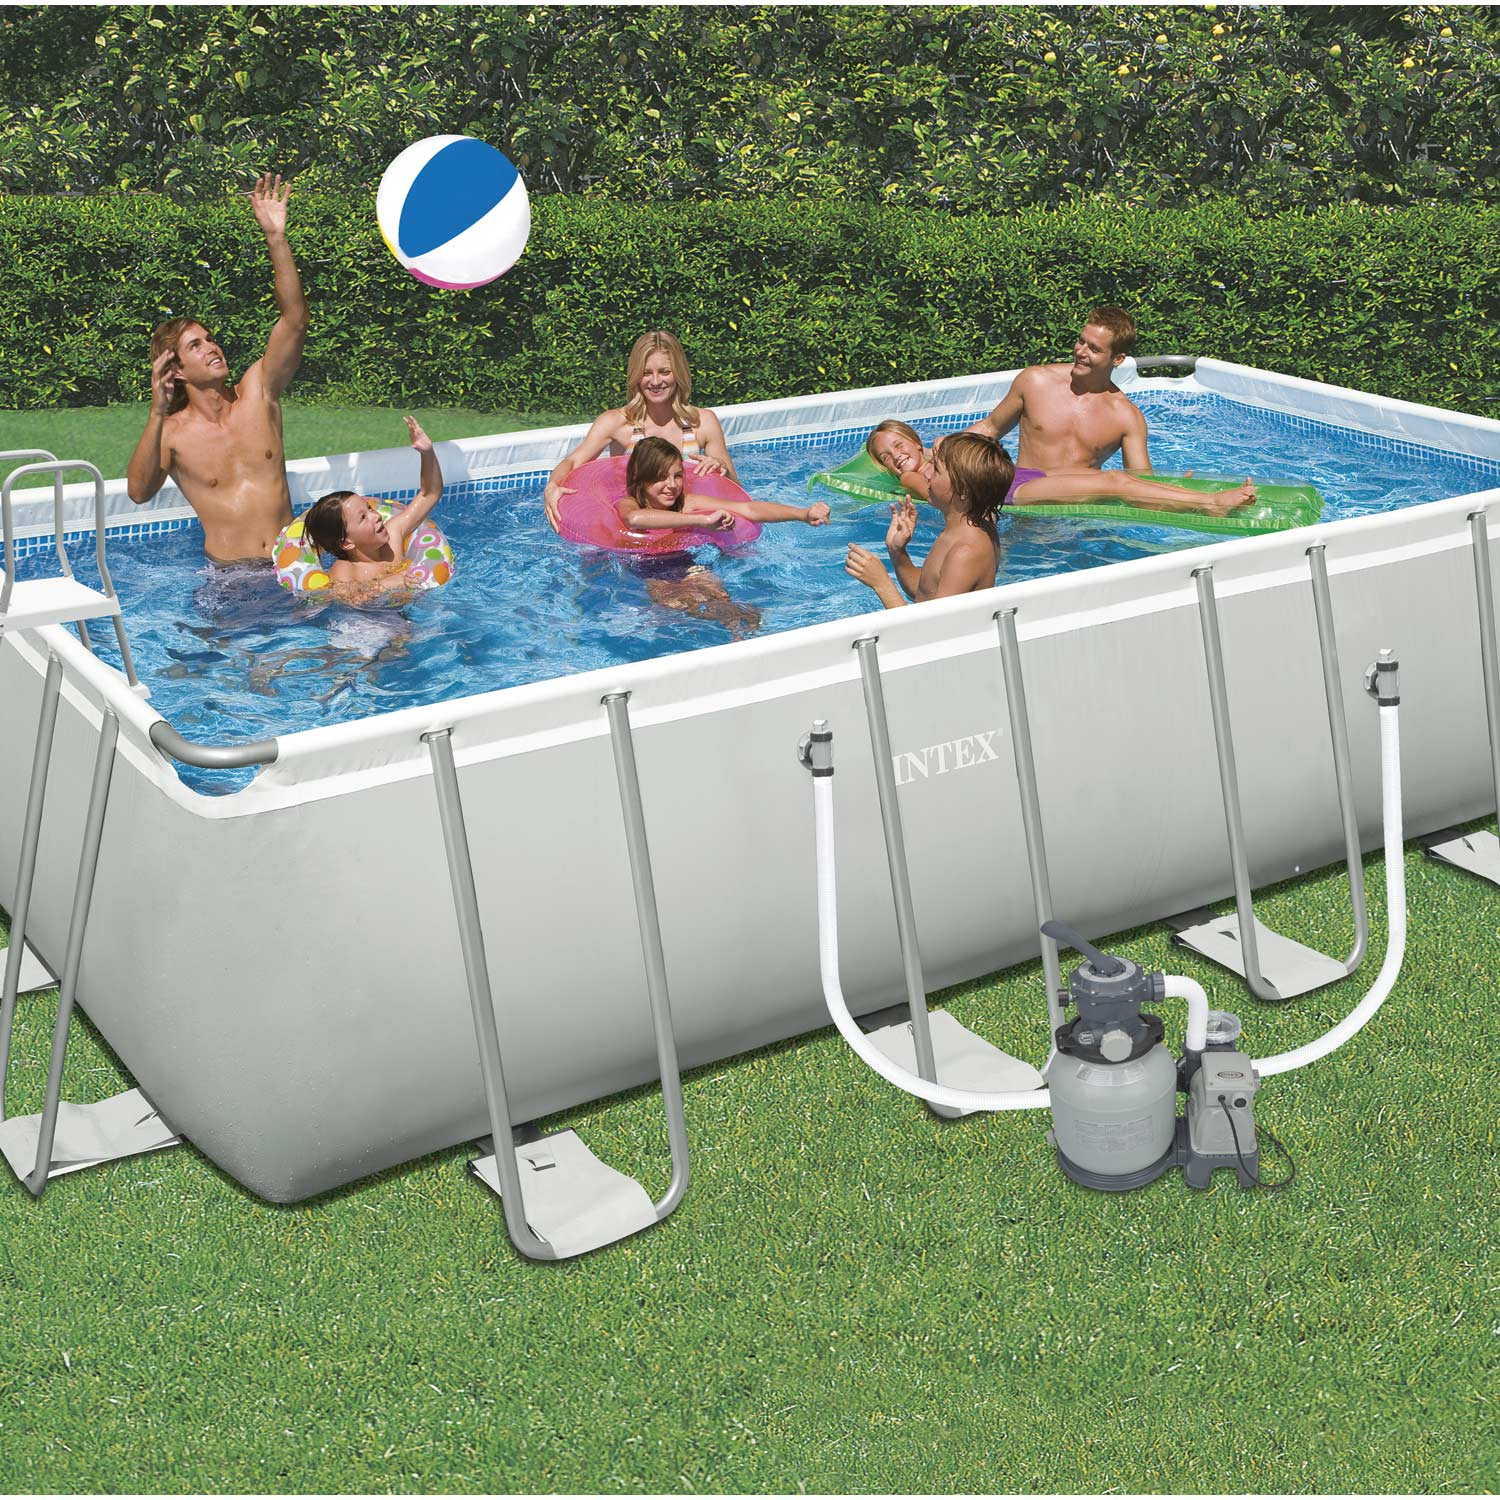 Piscine hors sol autoportante tubulaire ultra silver intex for Aspirateur intex pour piscine hors sol